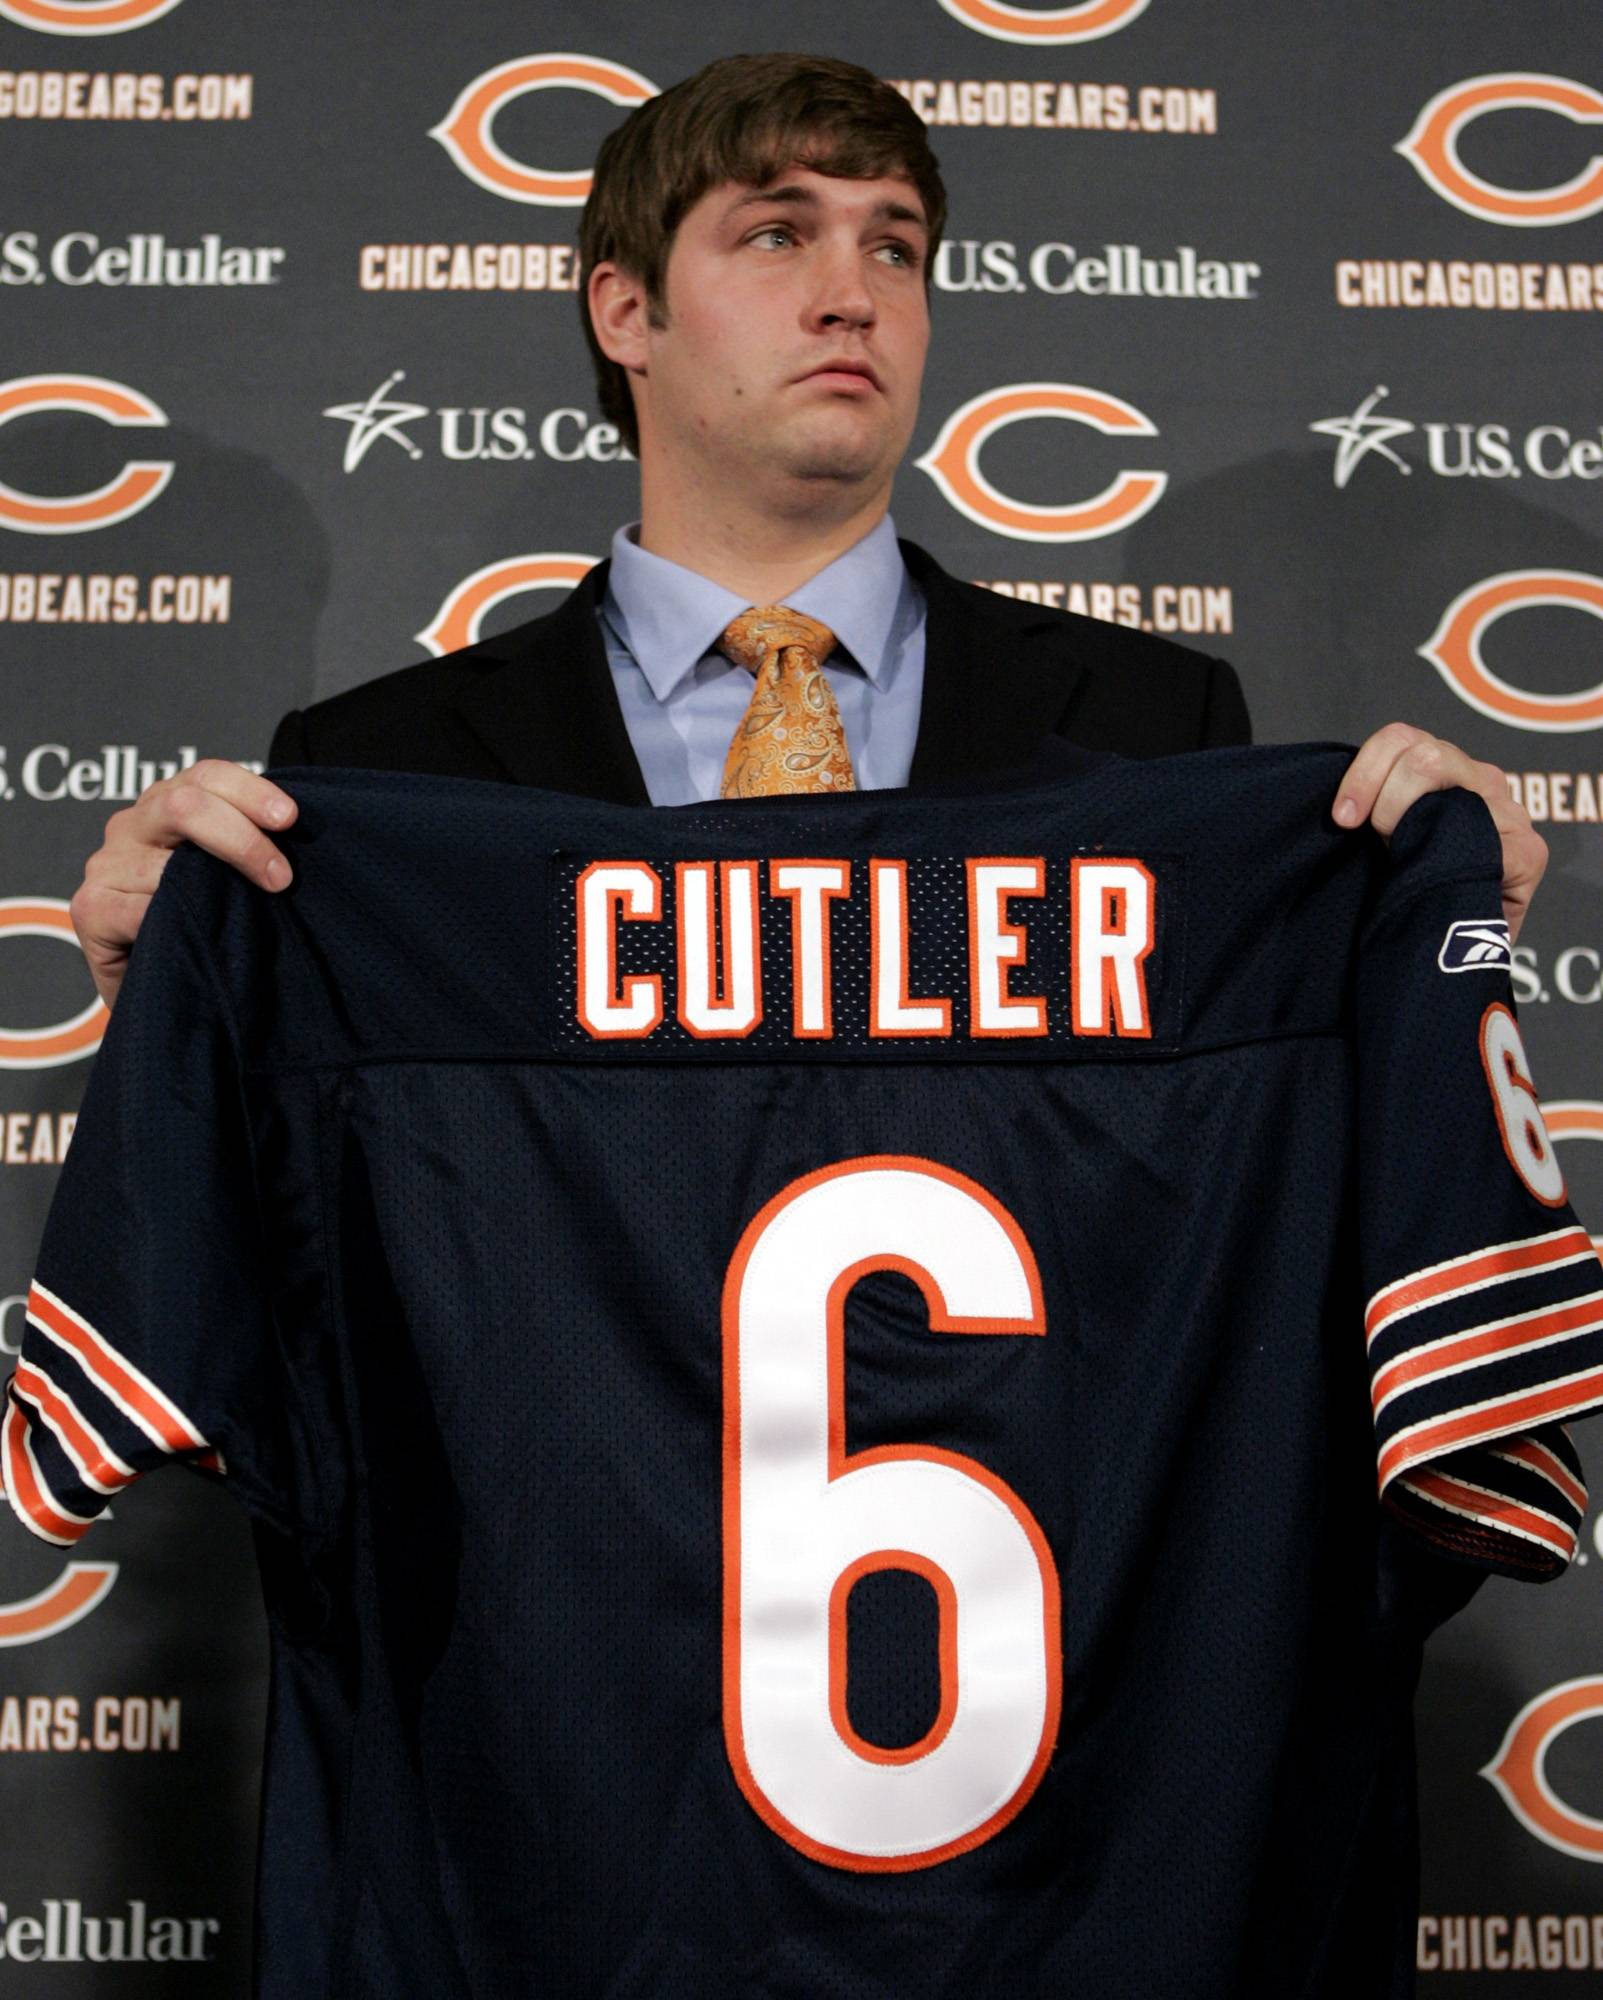 Images: Jay Cutler and the Chicago Bears